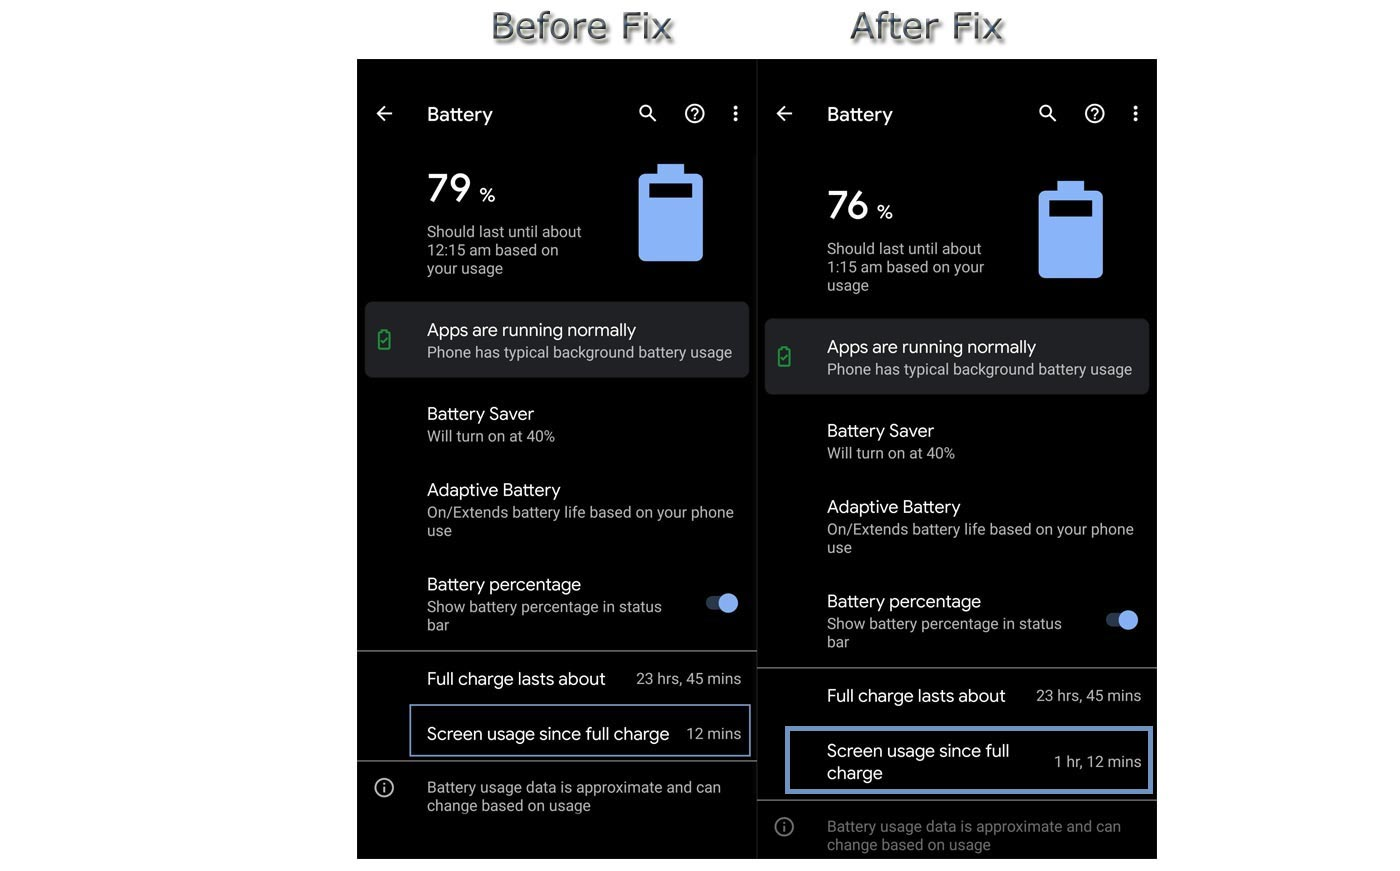 Google Messages Battery Issue Before and After Fix